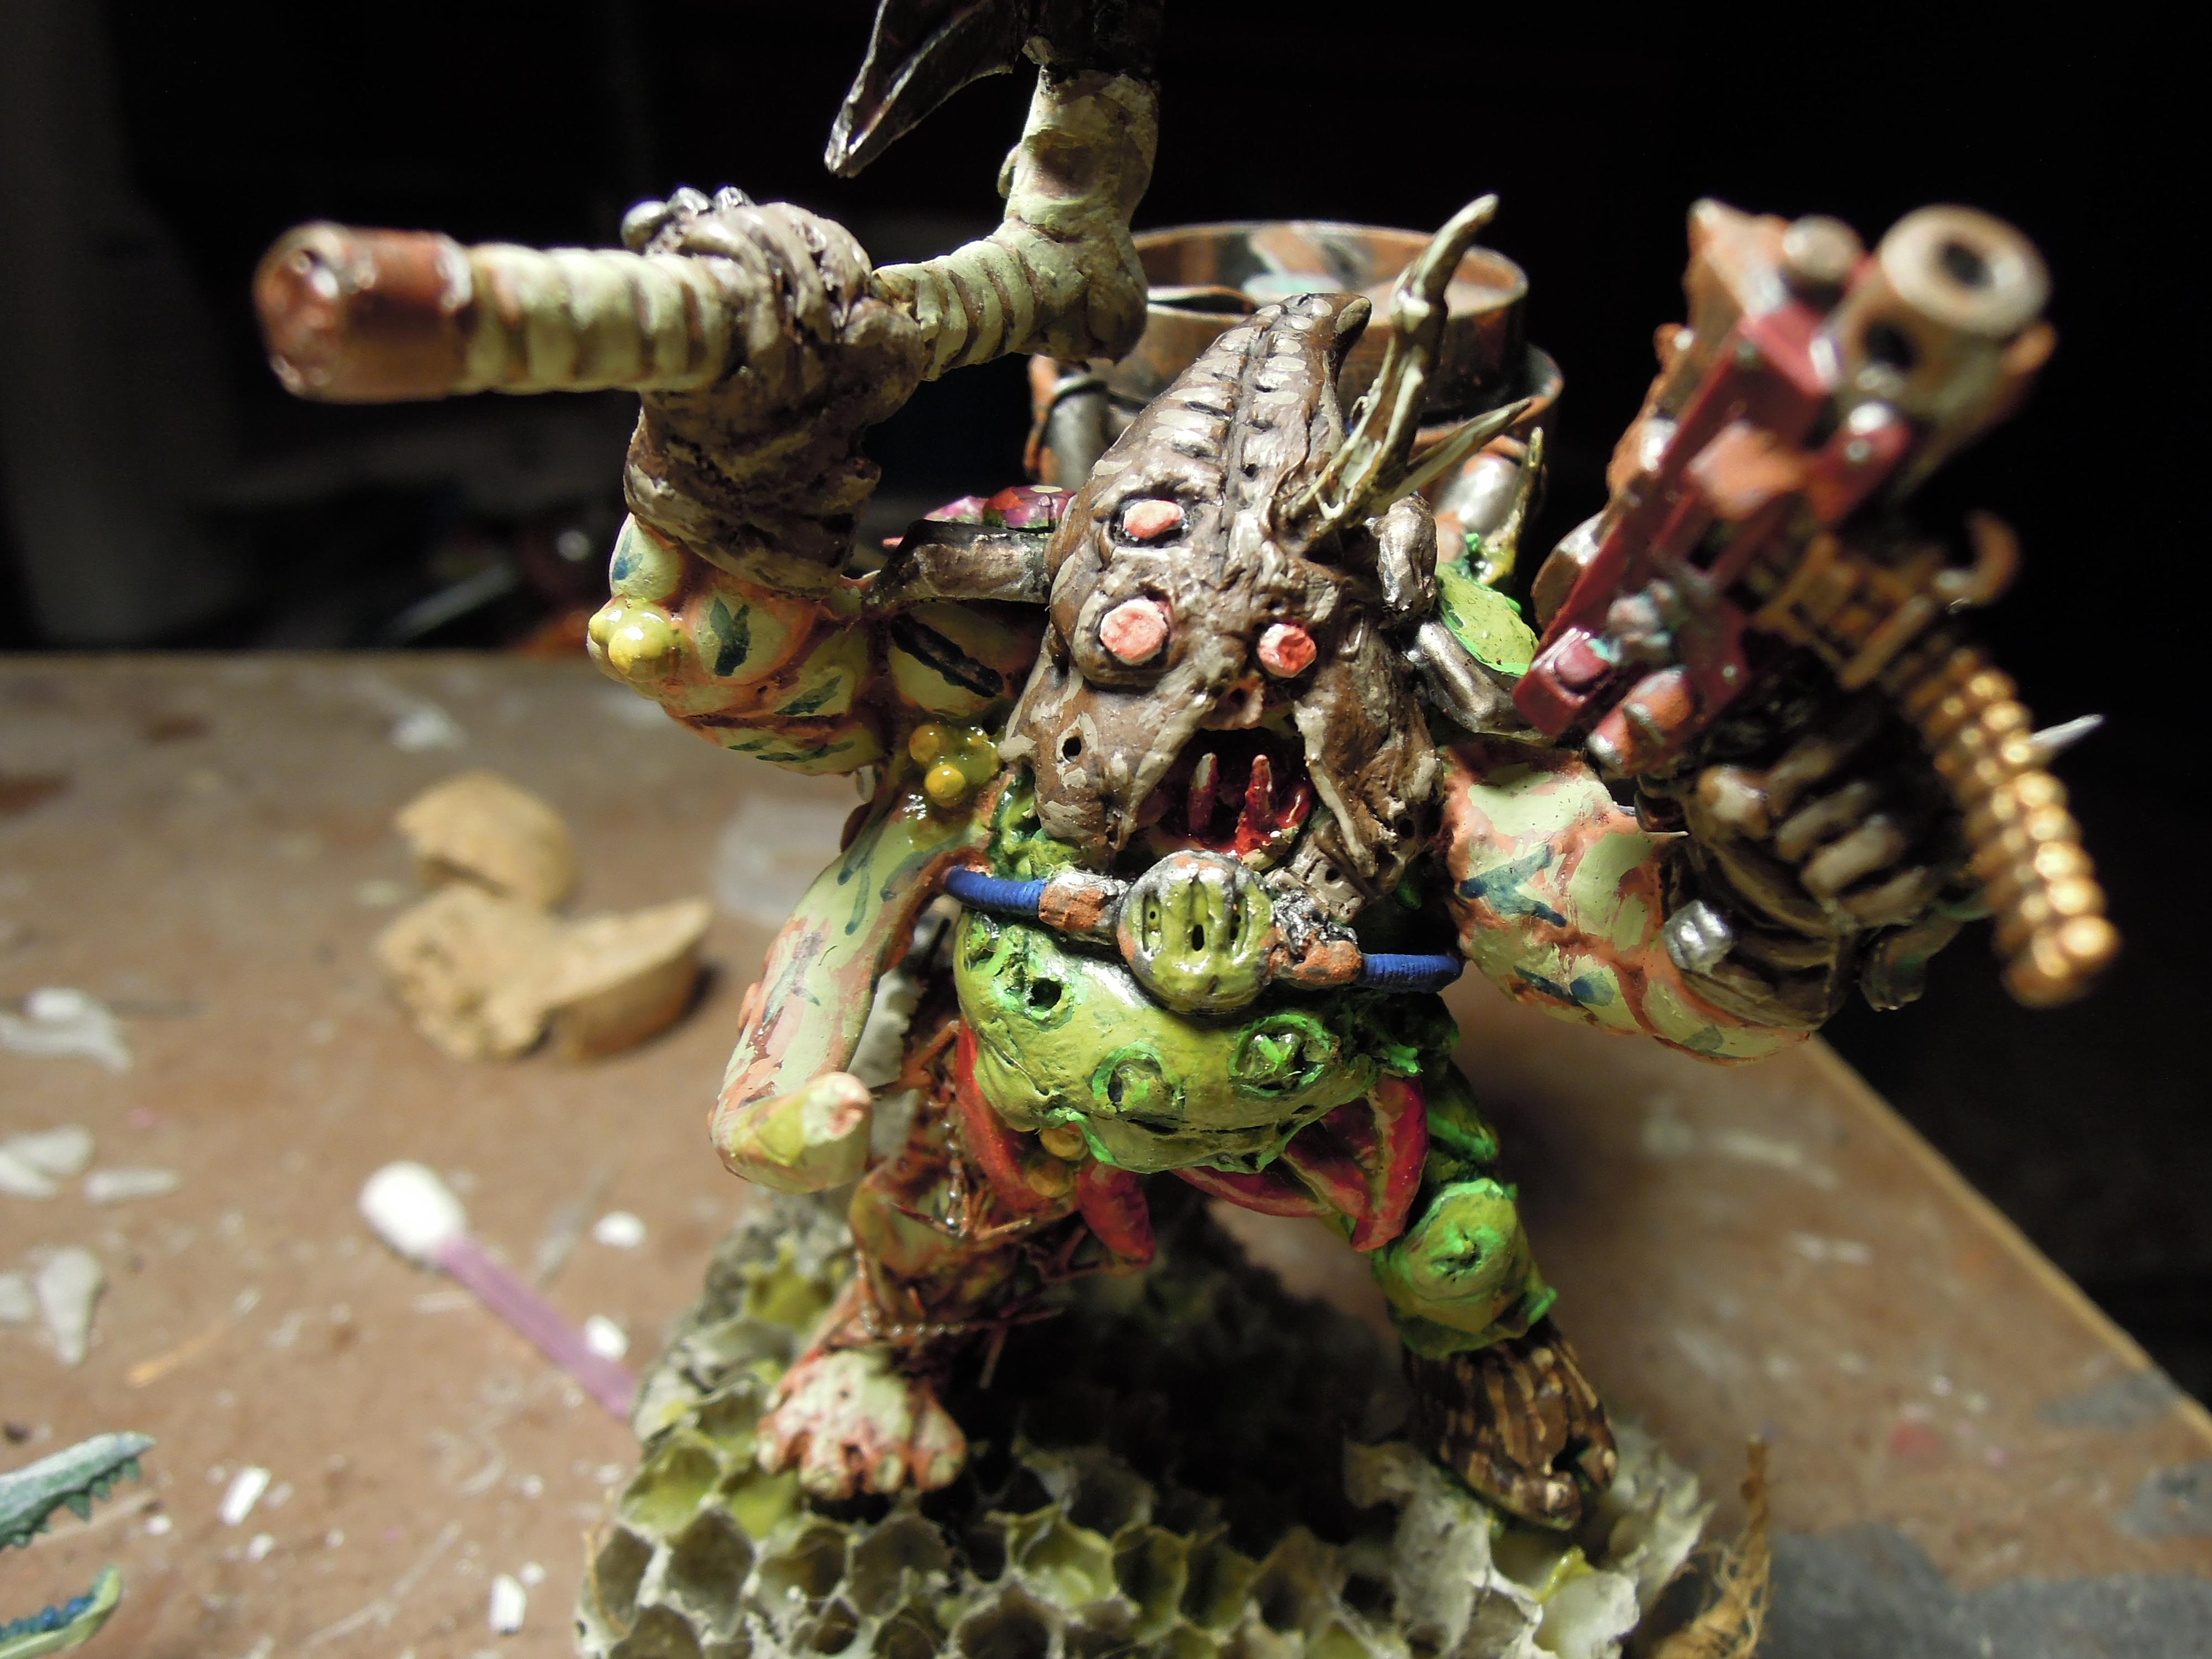 Axe, Blight, Chaos, Conversion, Daemon Prince, Death Guard, Guts, Heavy Bolter, Hood, Jetpack, Jumppack, Nurgle, Plague, Poleaxe, Rot, Scratch Build, Technolog, Tehnolog